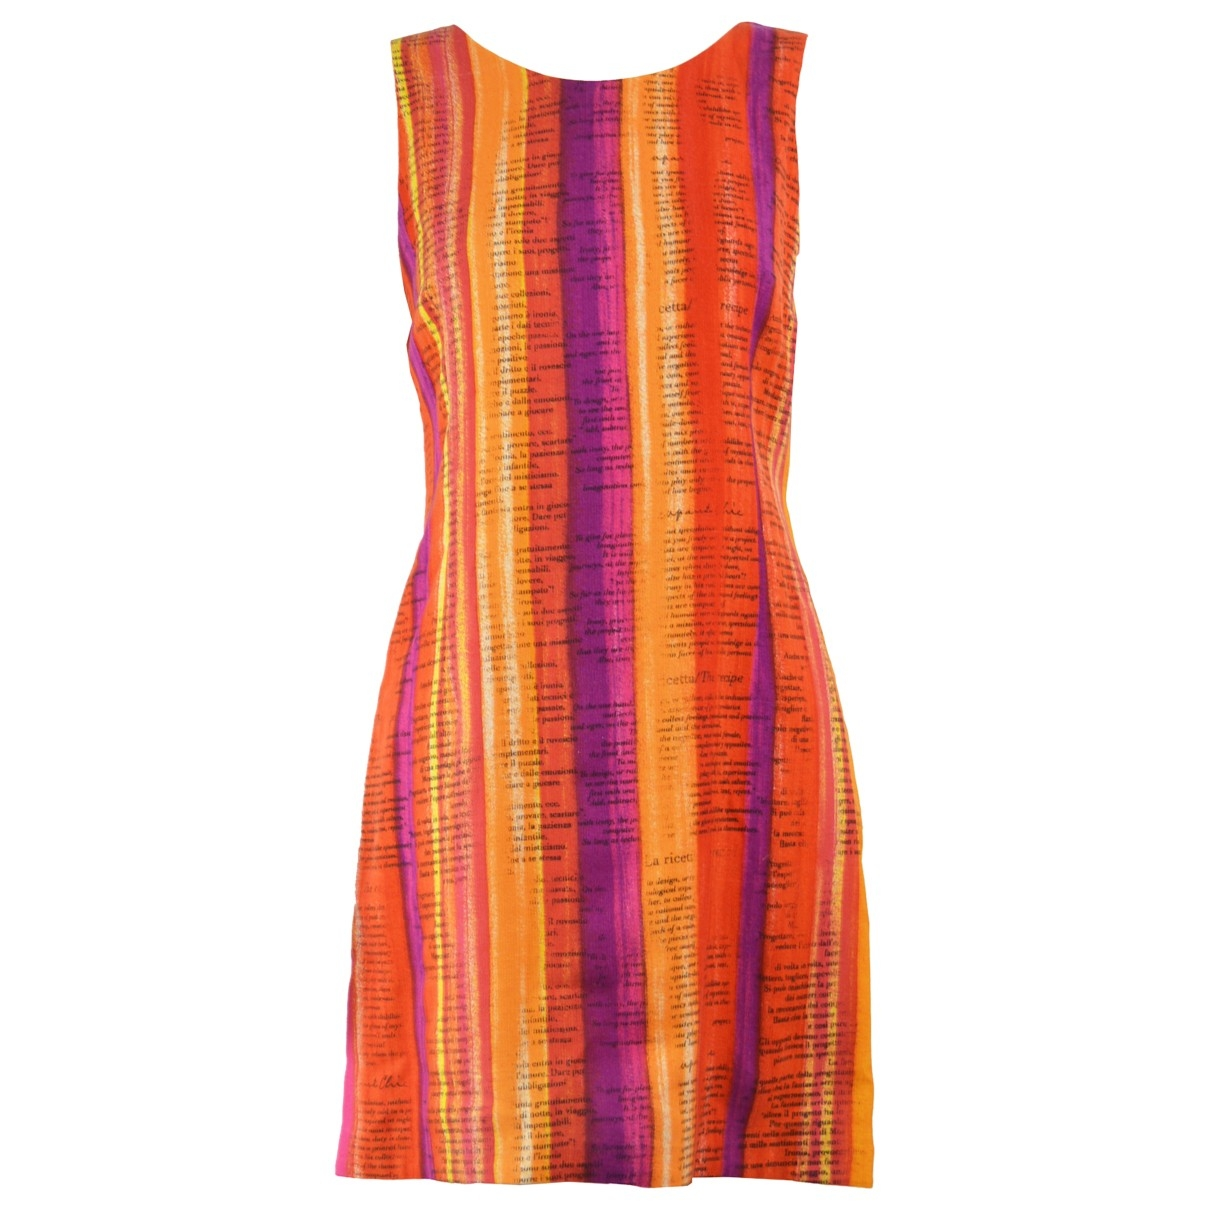 Moschino Cheap And Chic \N Kleid in  Bunt Viskose